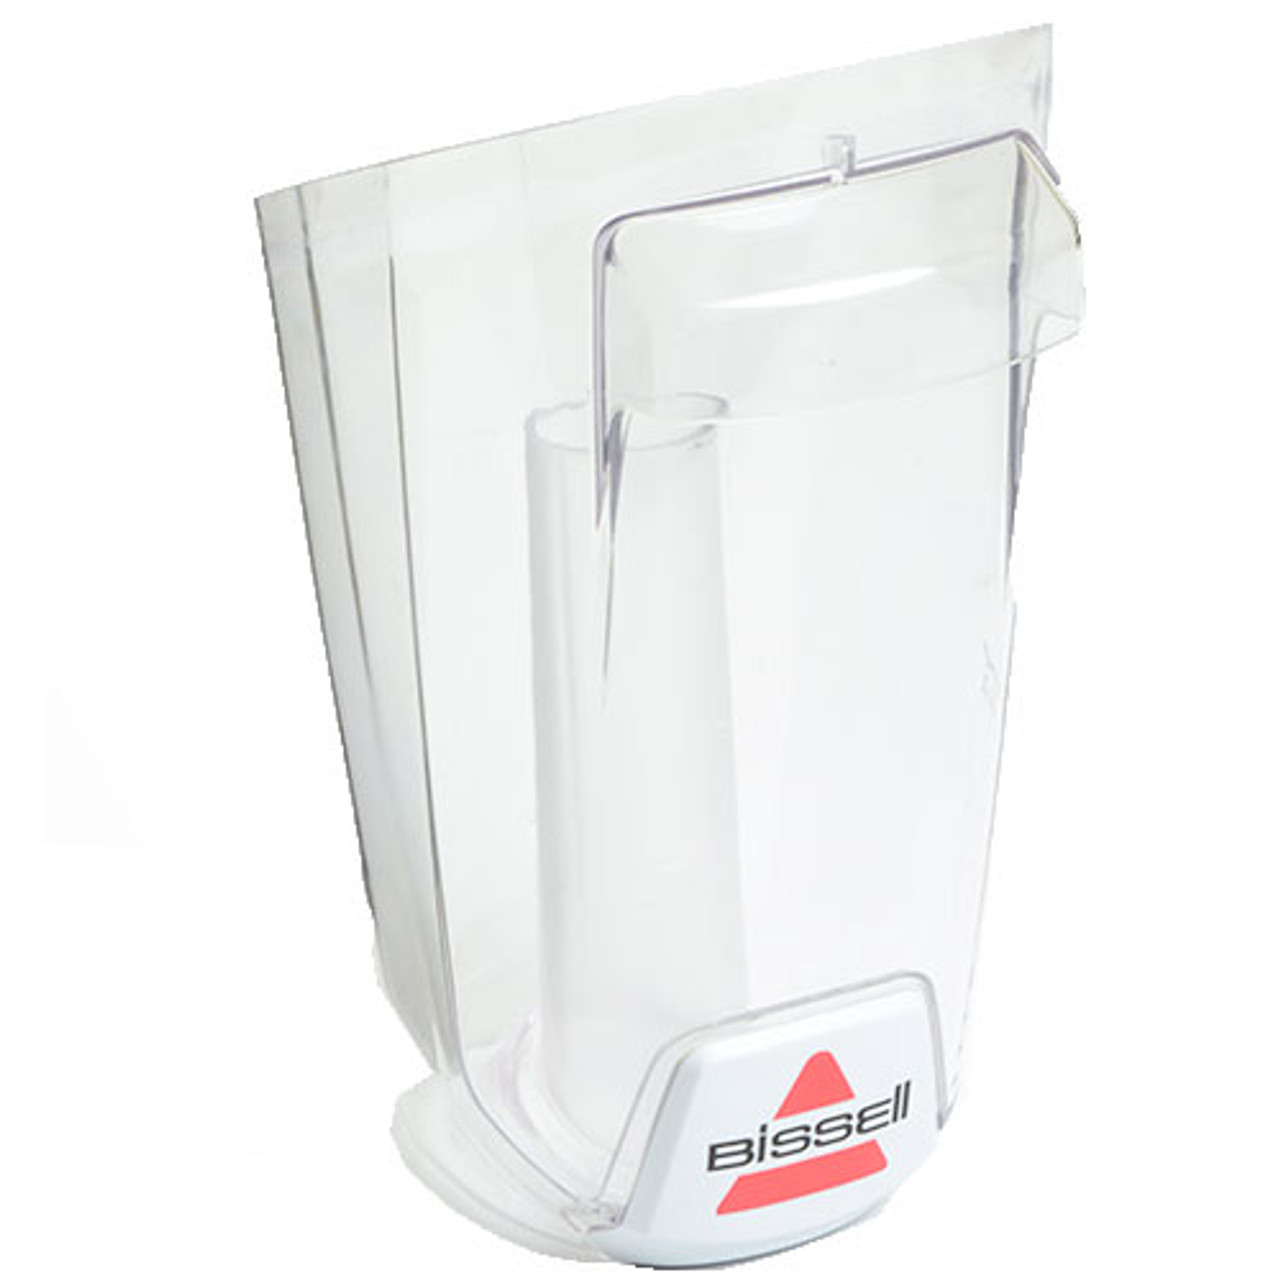 Bissell Dirty Tank For Crosswave Multi Surface Wet Dry Vac